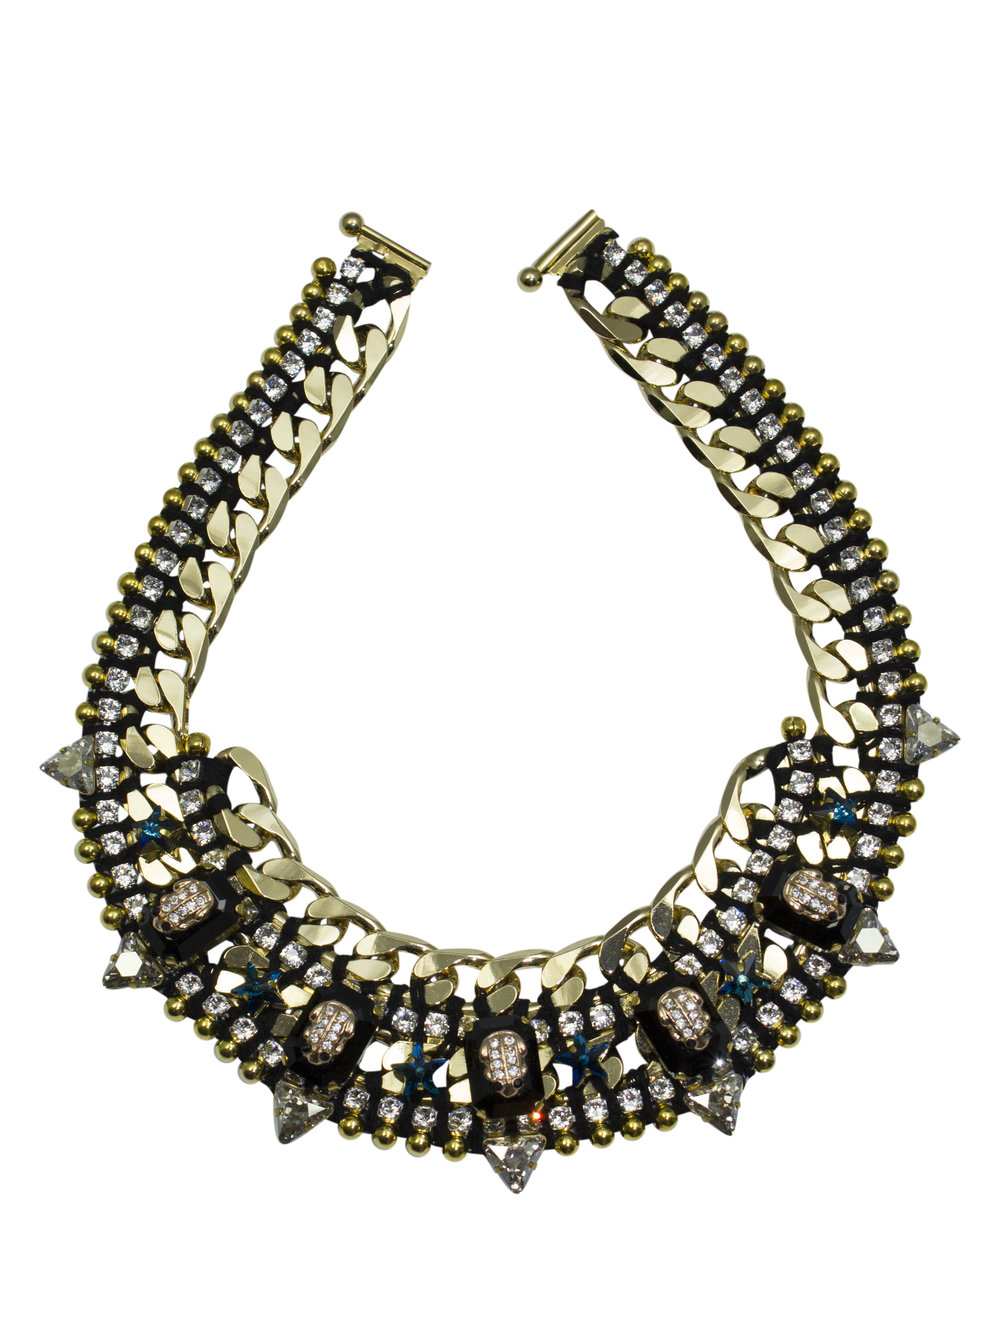 210N Black & Crystal Star Military Necklace.jpg